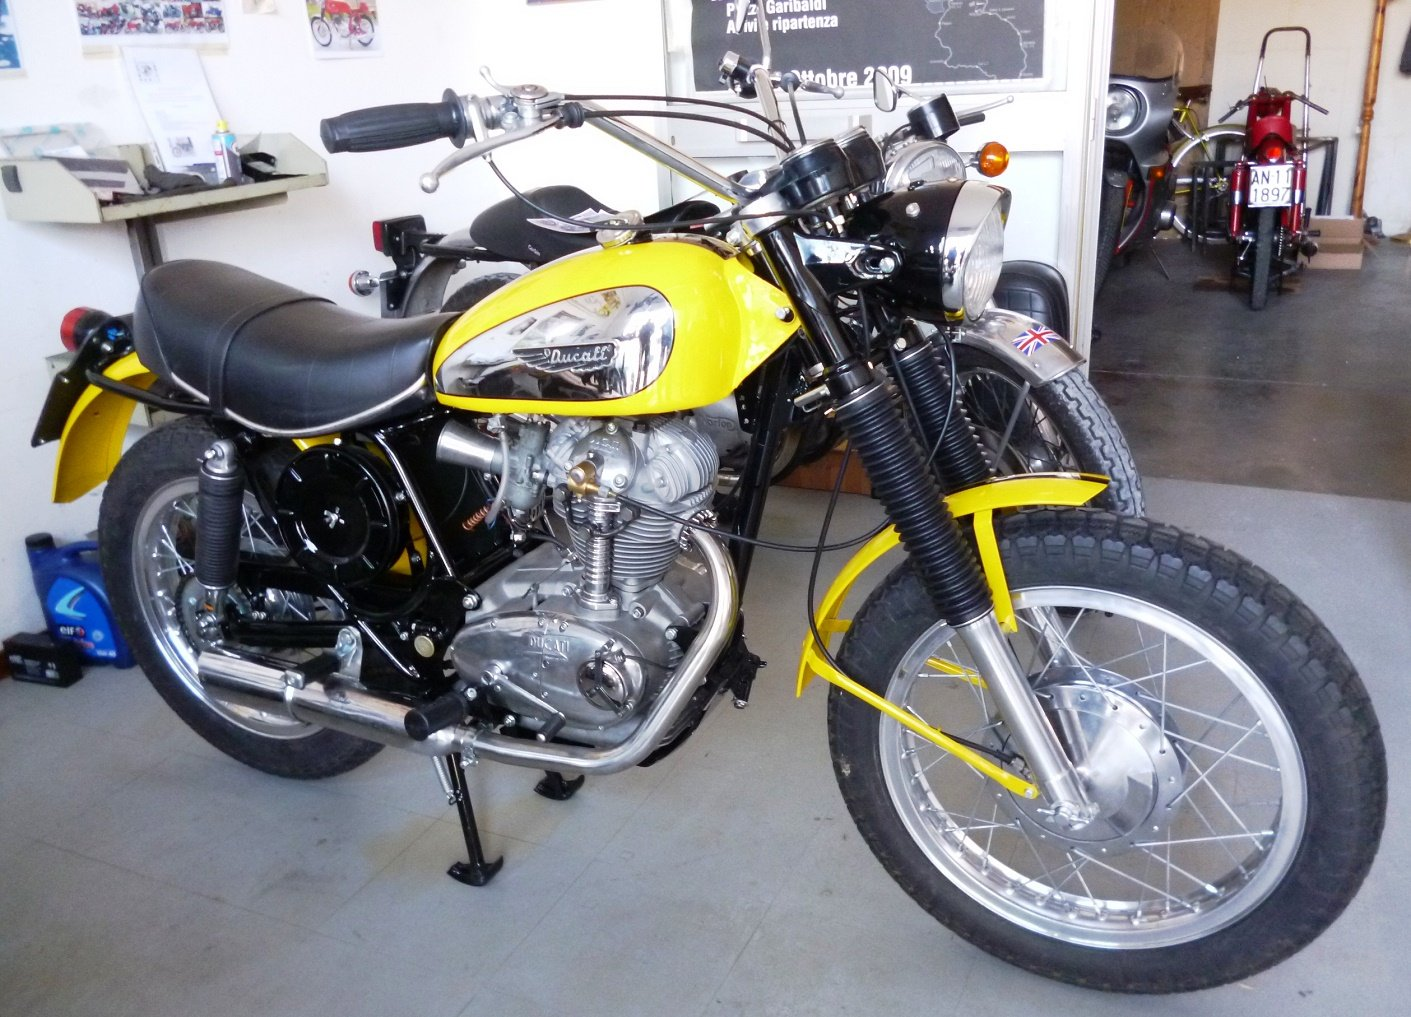 1974 Ducati 250 Scrambler low mileage For Sale (picture 3 of 6)